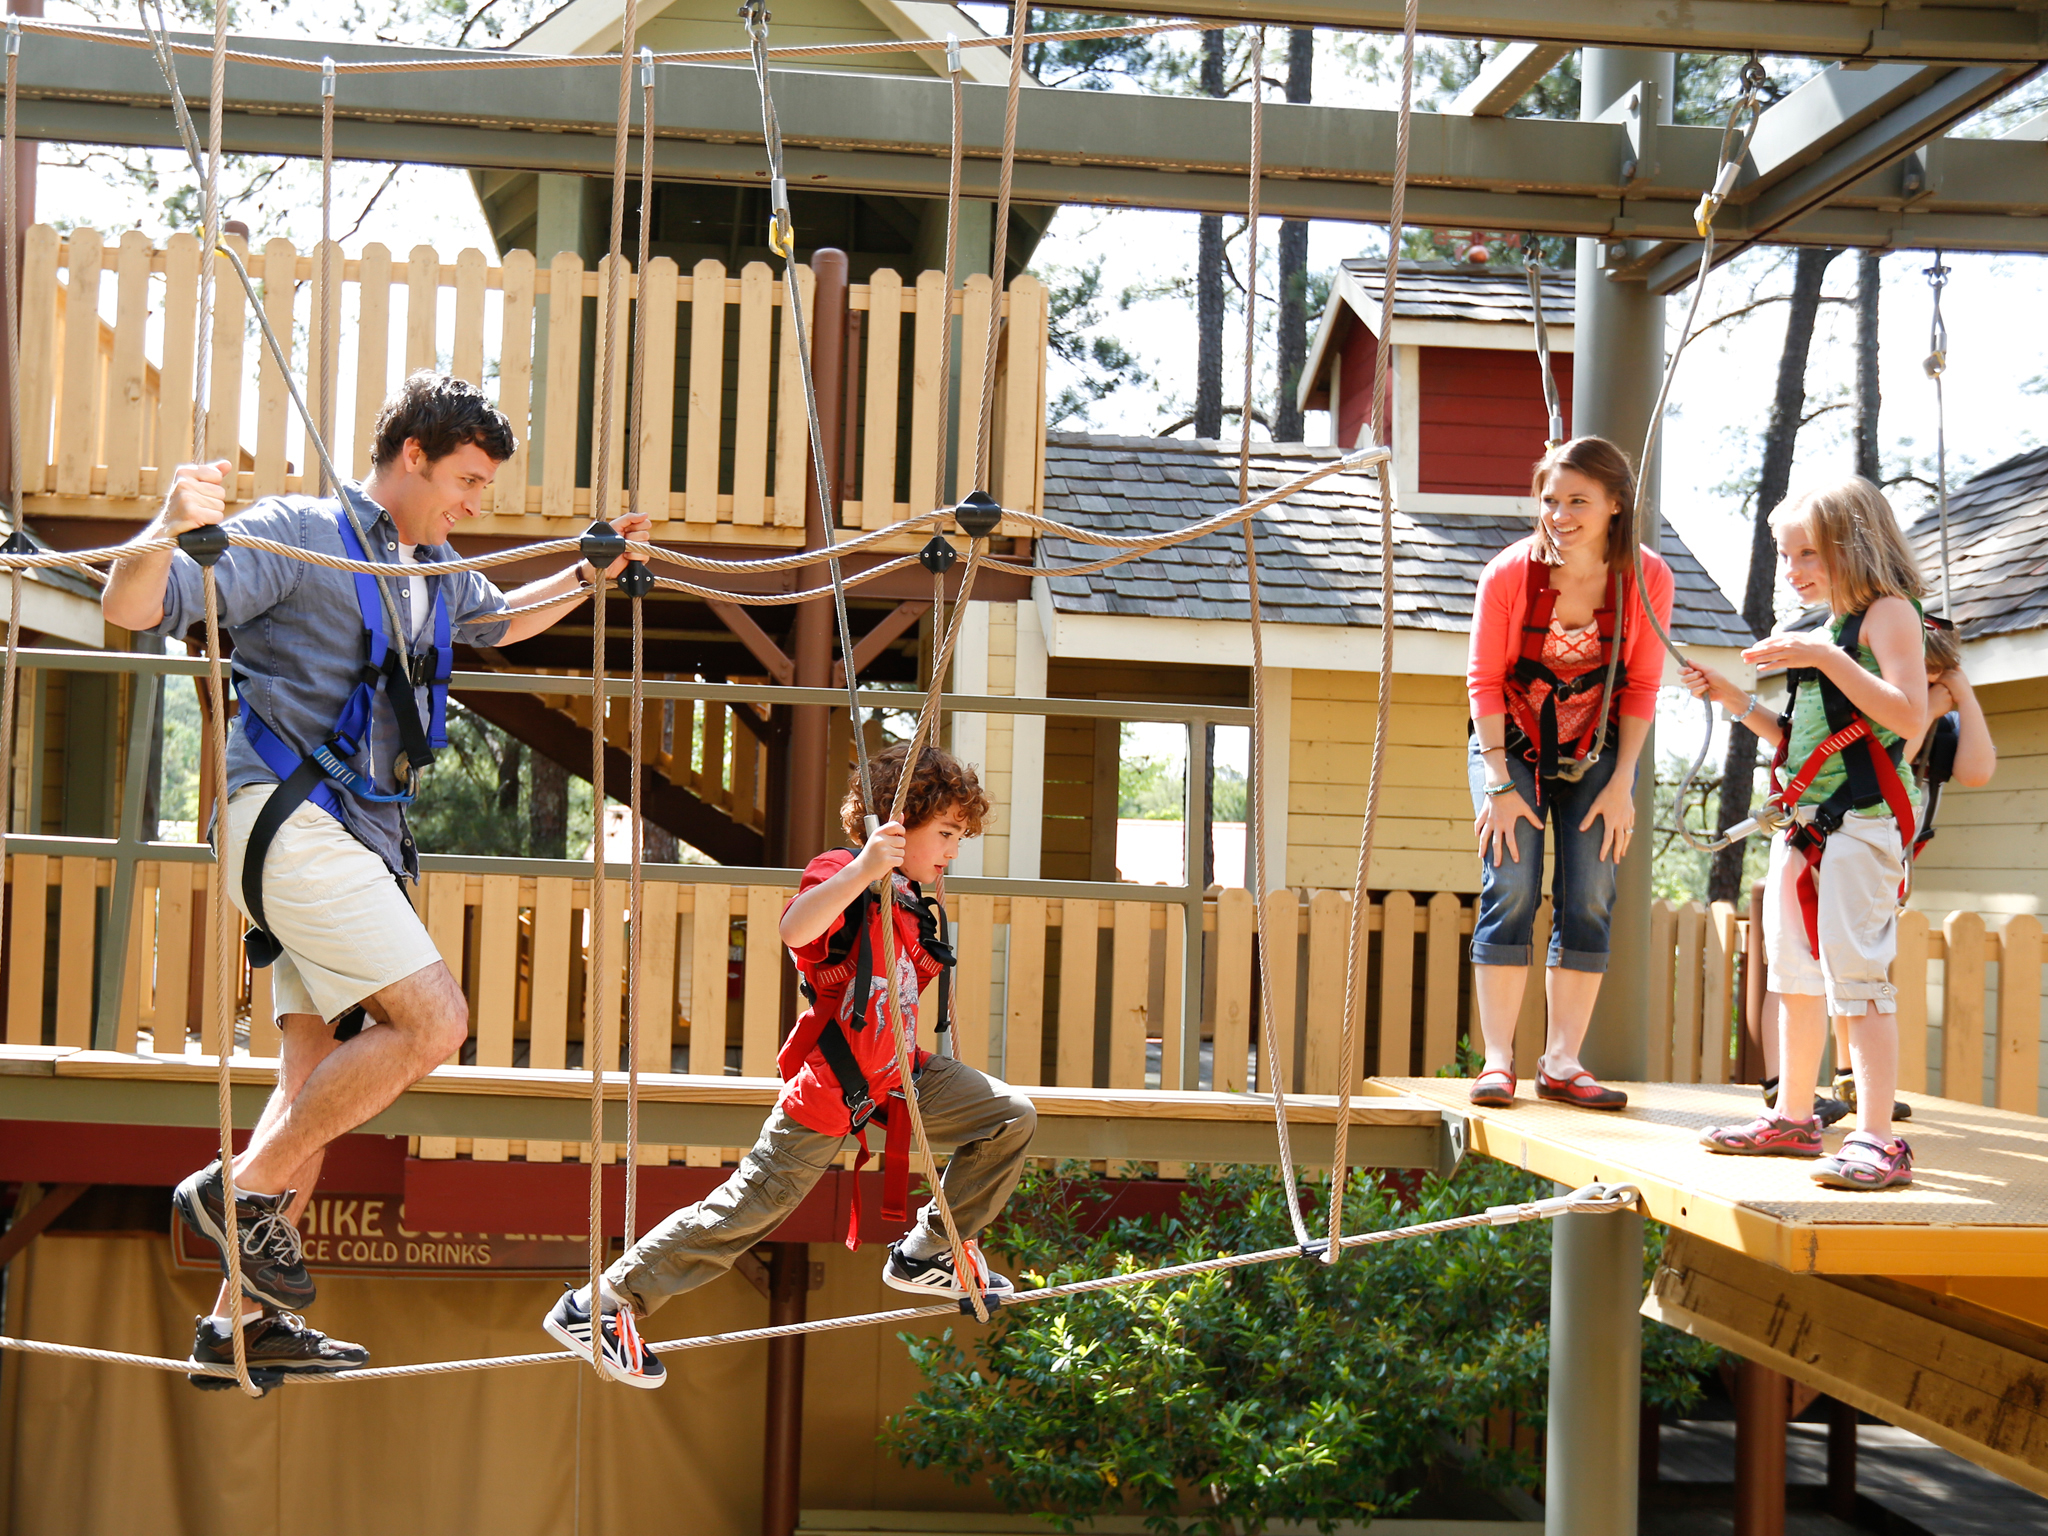 A family tackles an elevated ropes course at Stone Mountain Park in Atlanta.